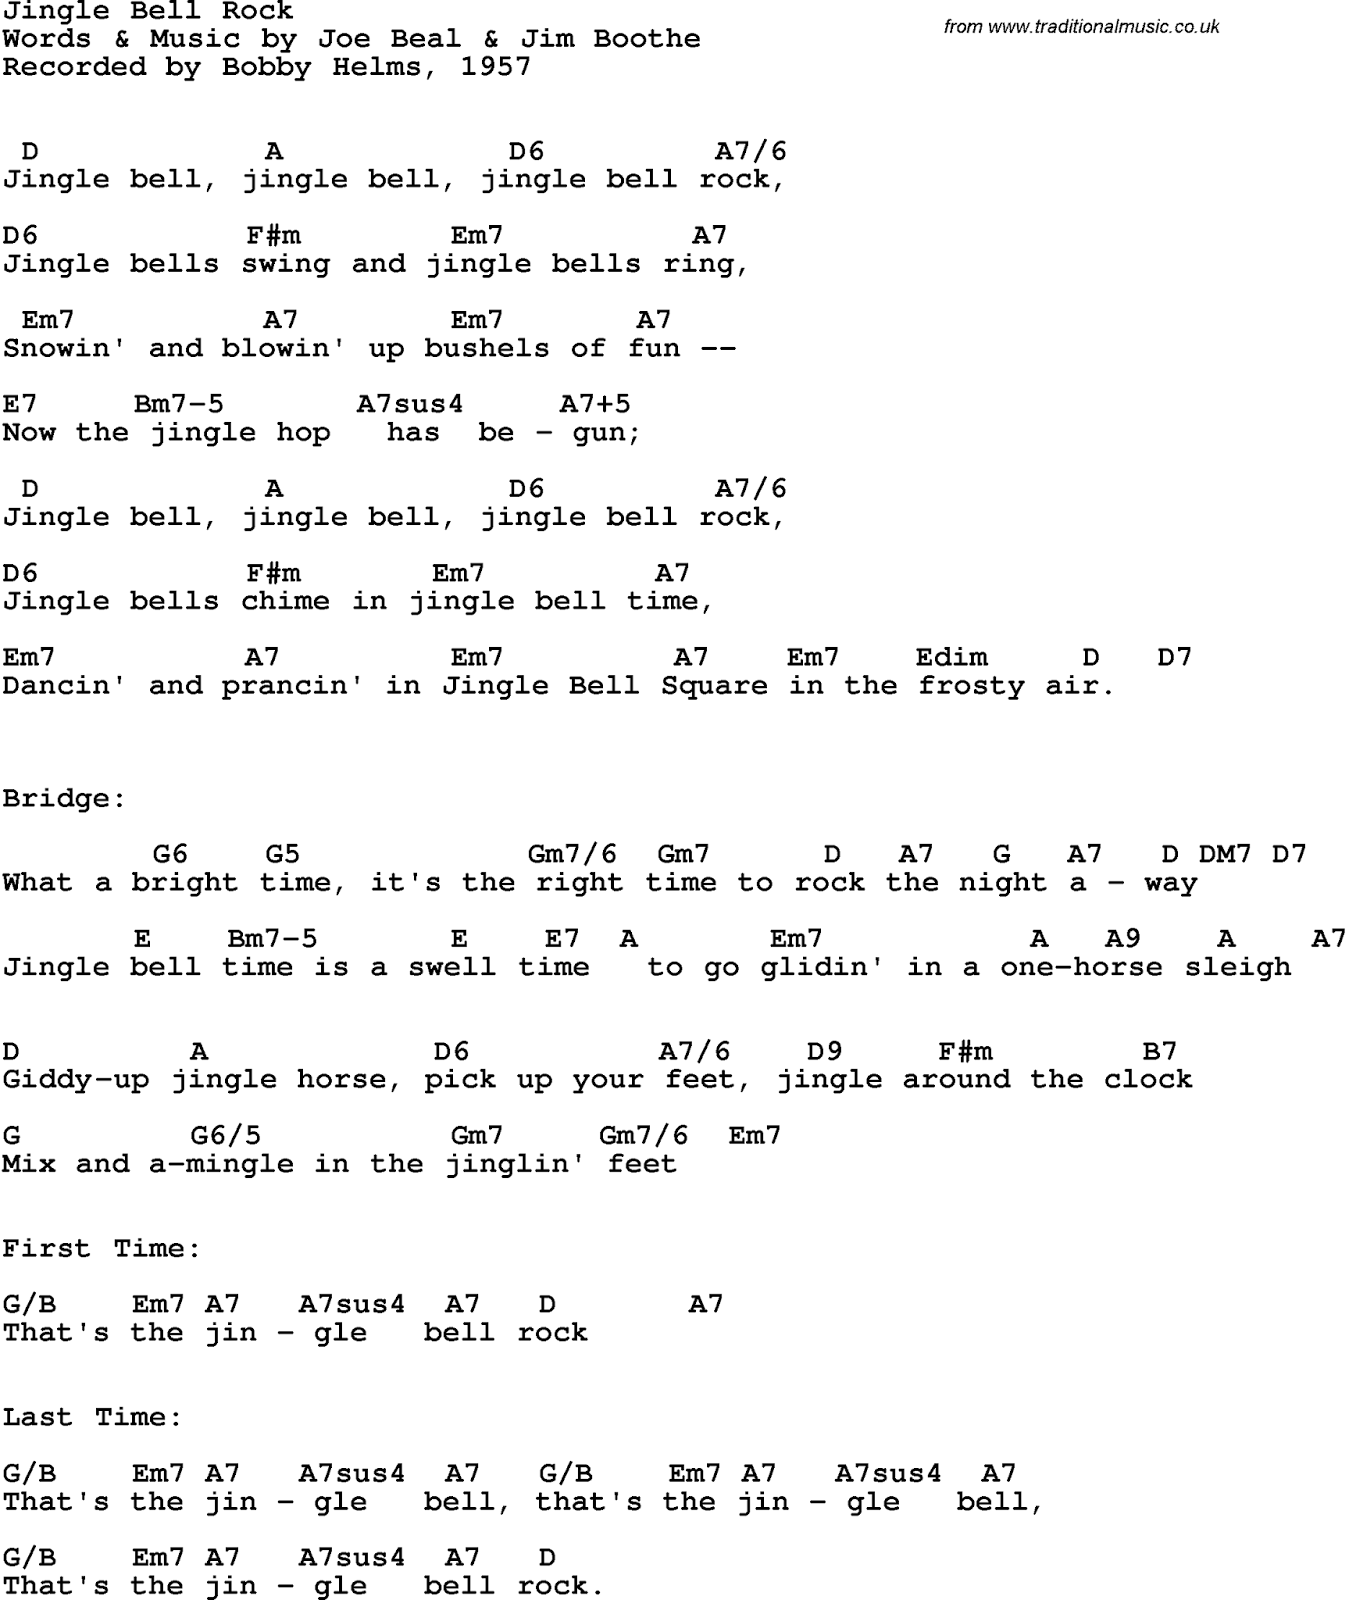 easy 1 jingle bells guitar chords easy 2 jingle bells guitar chords ...